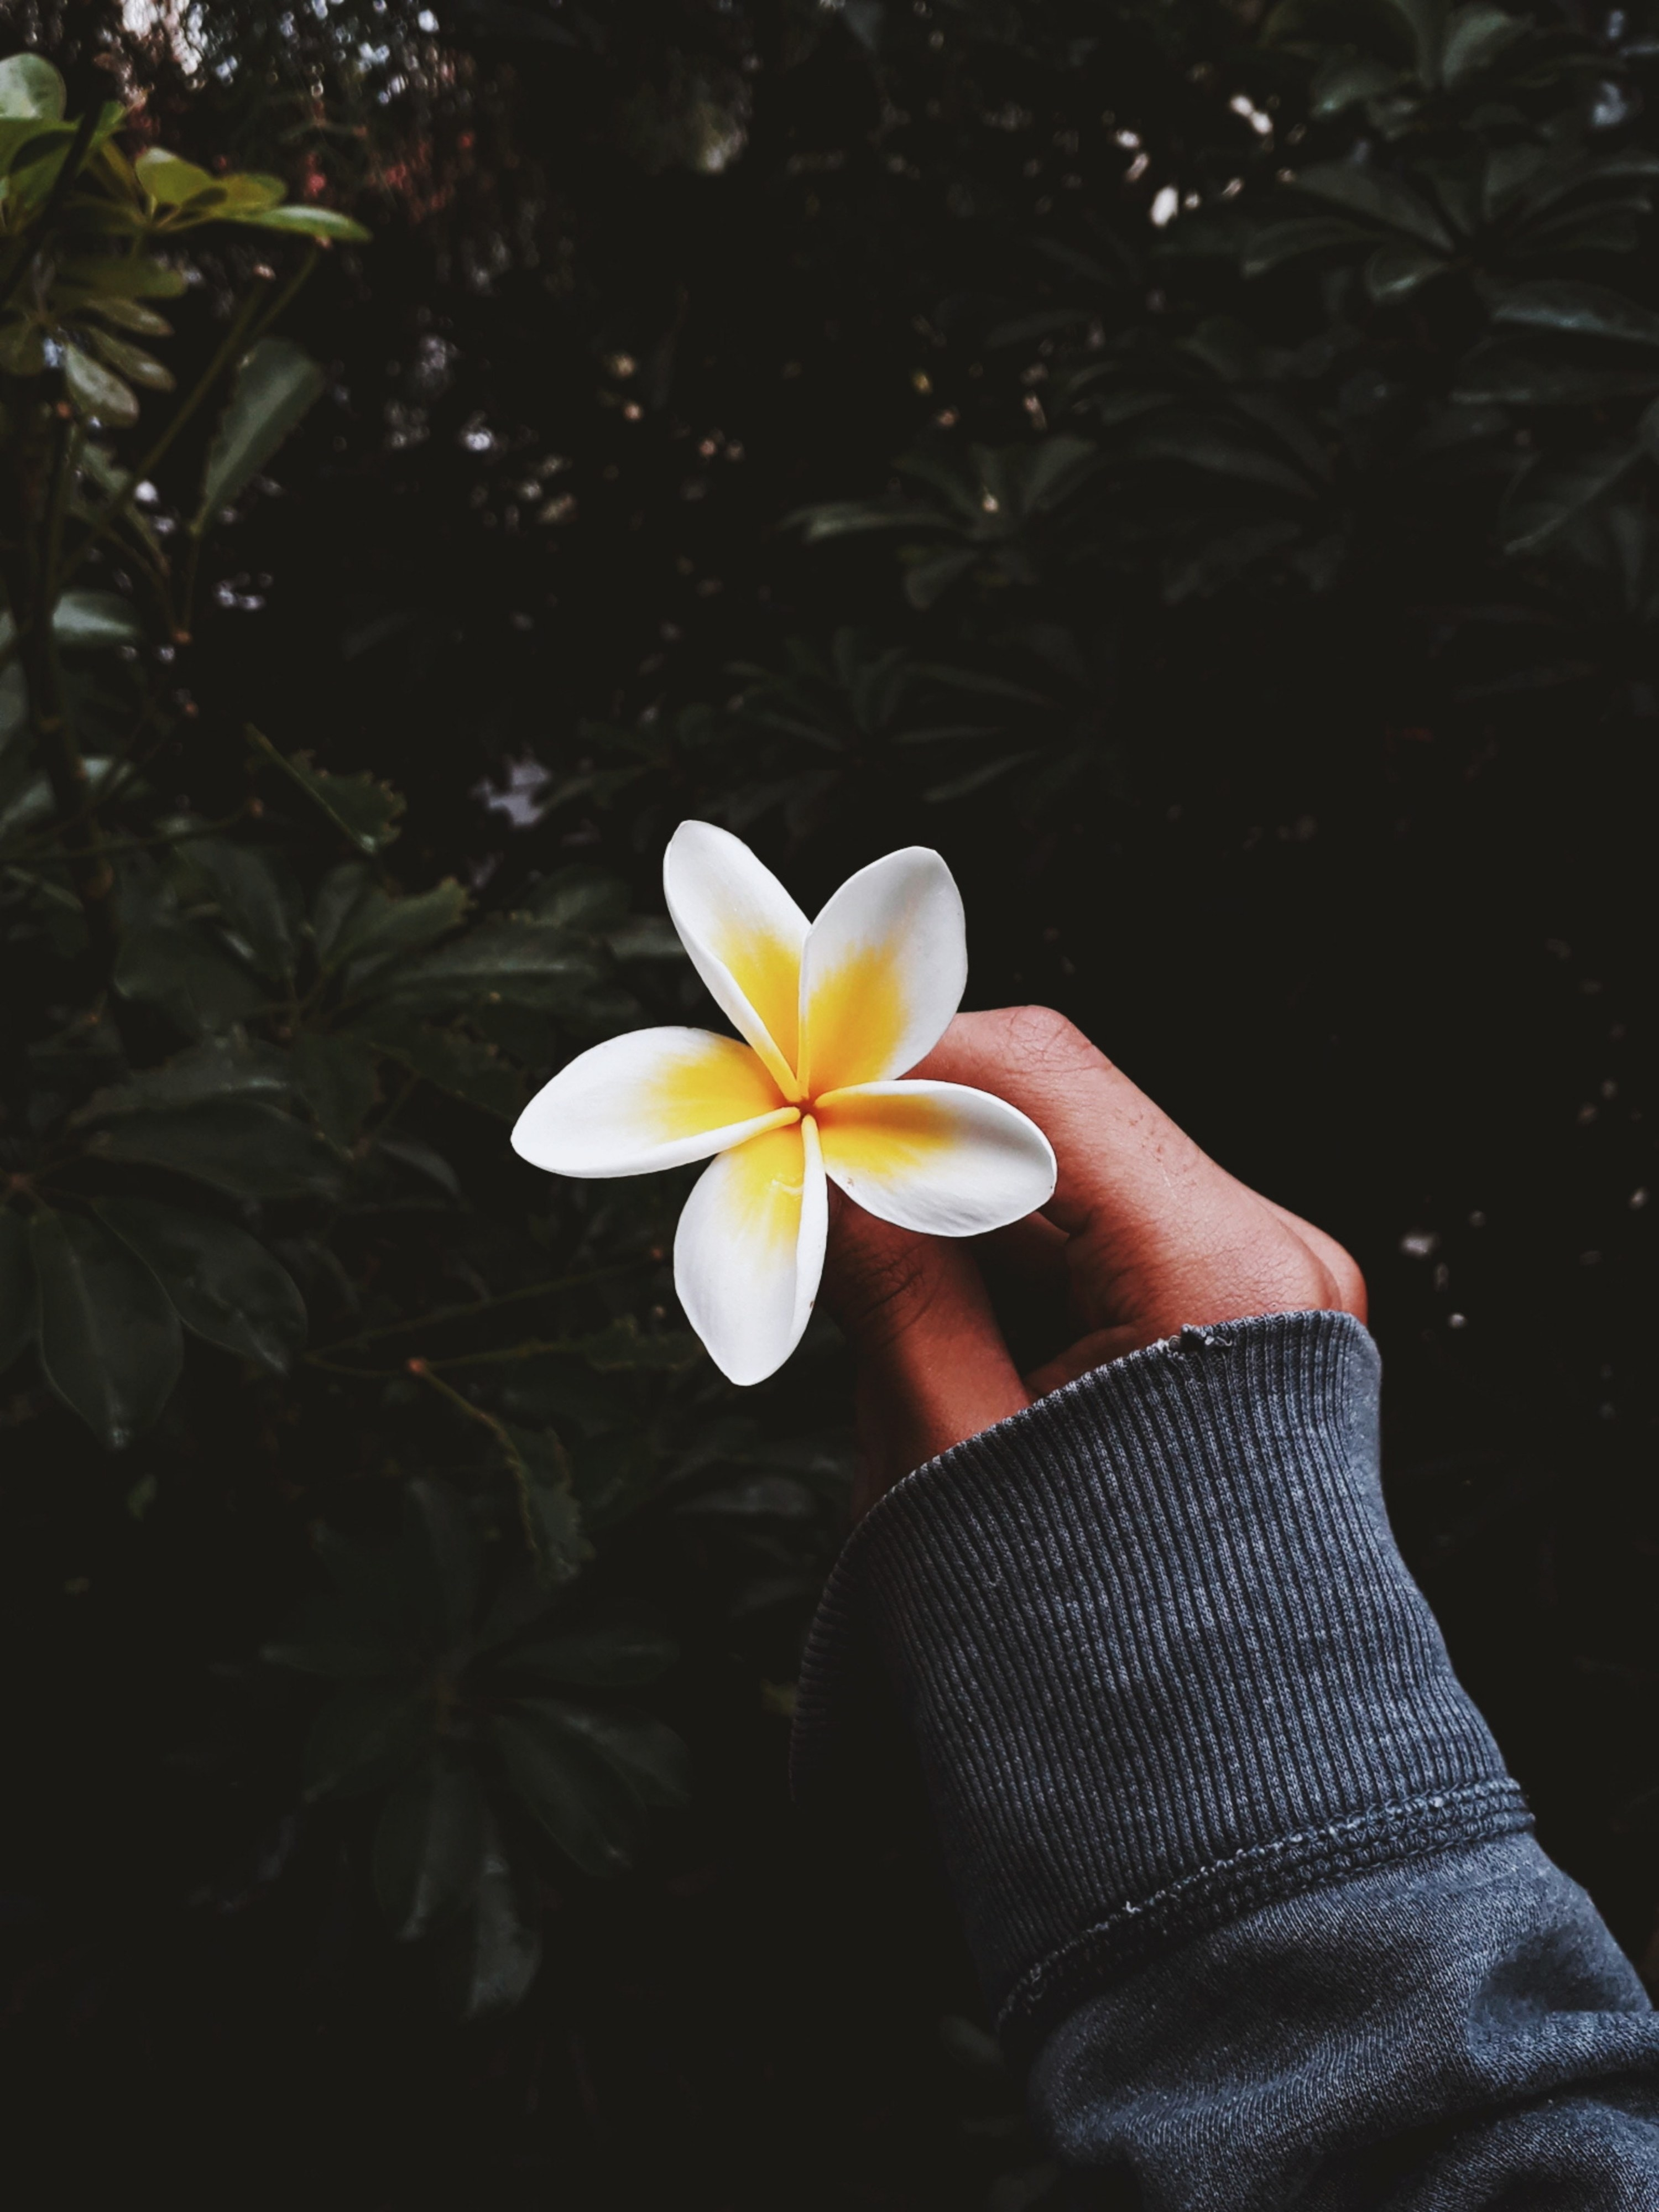 Person holding out a frangipani flower with a foliage backdrop